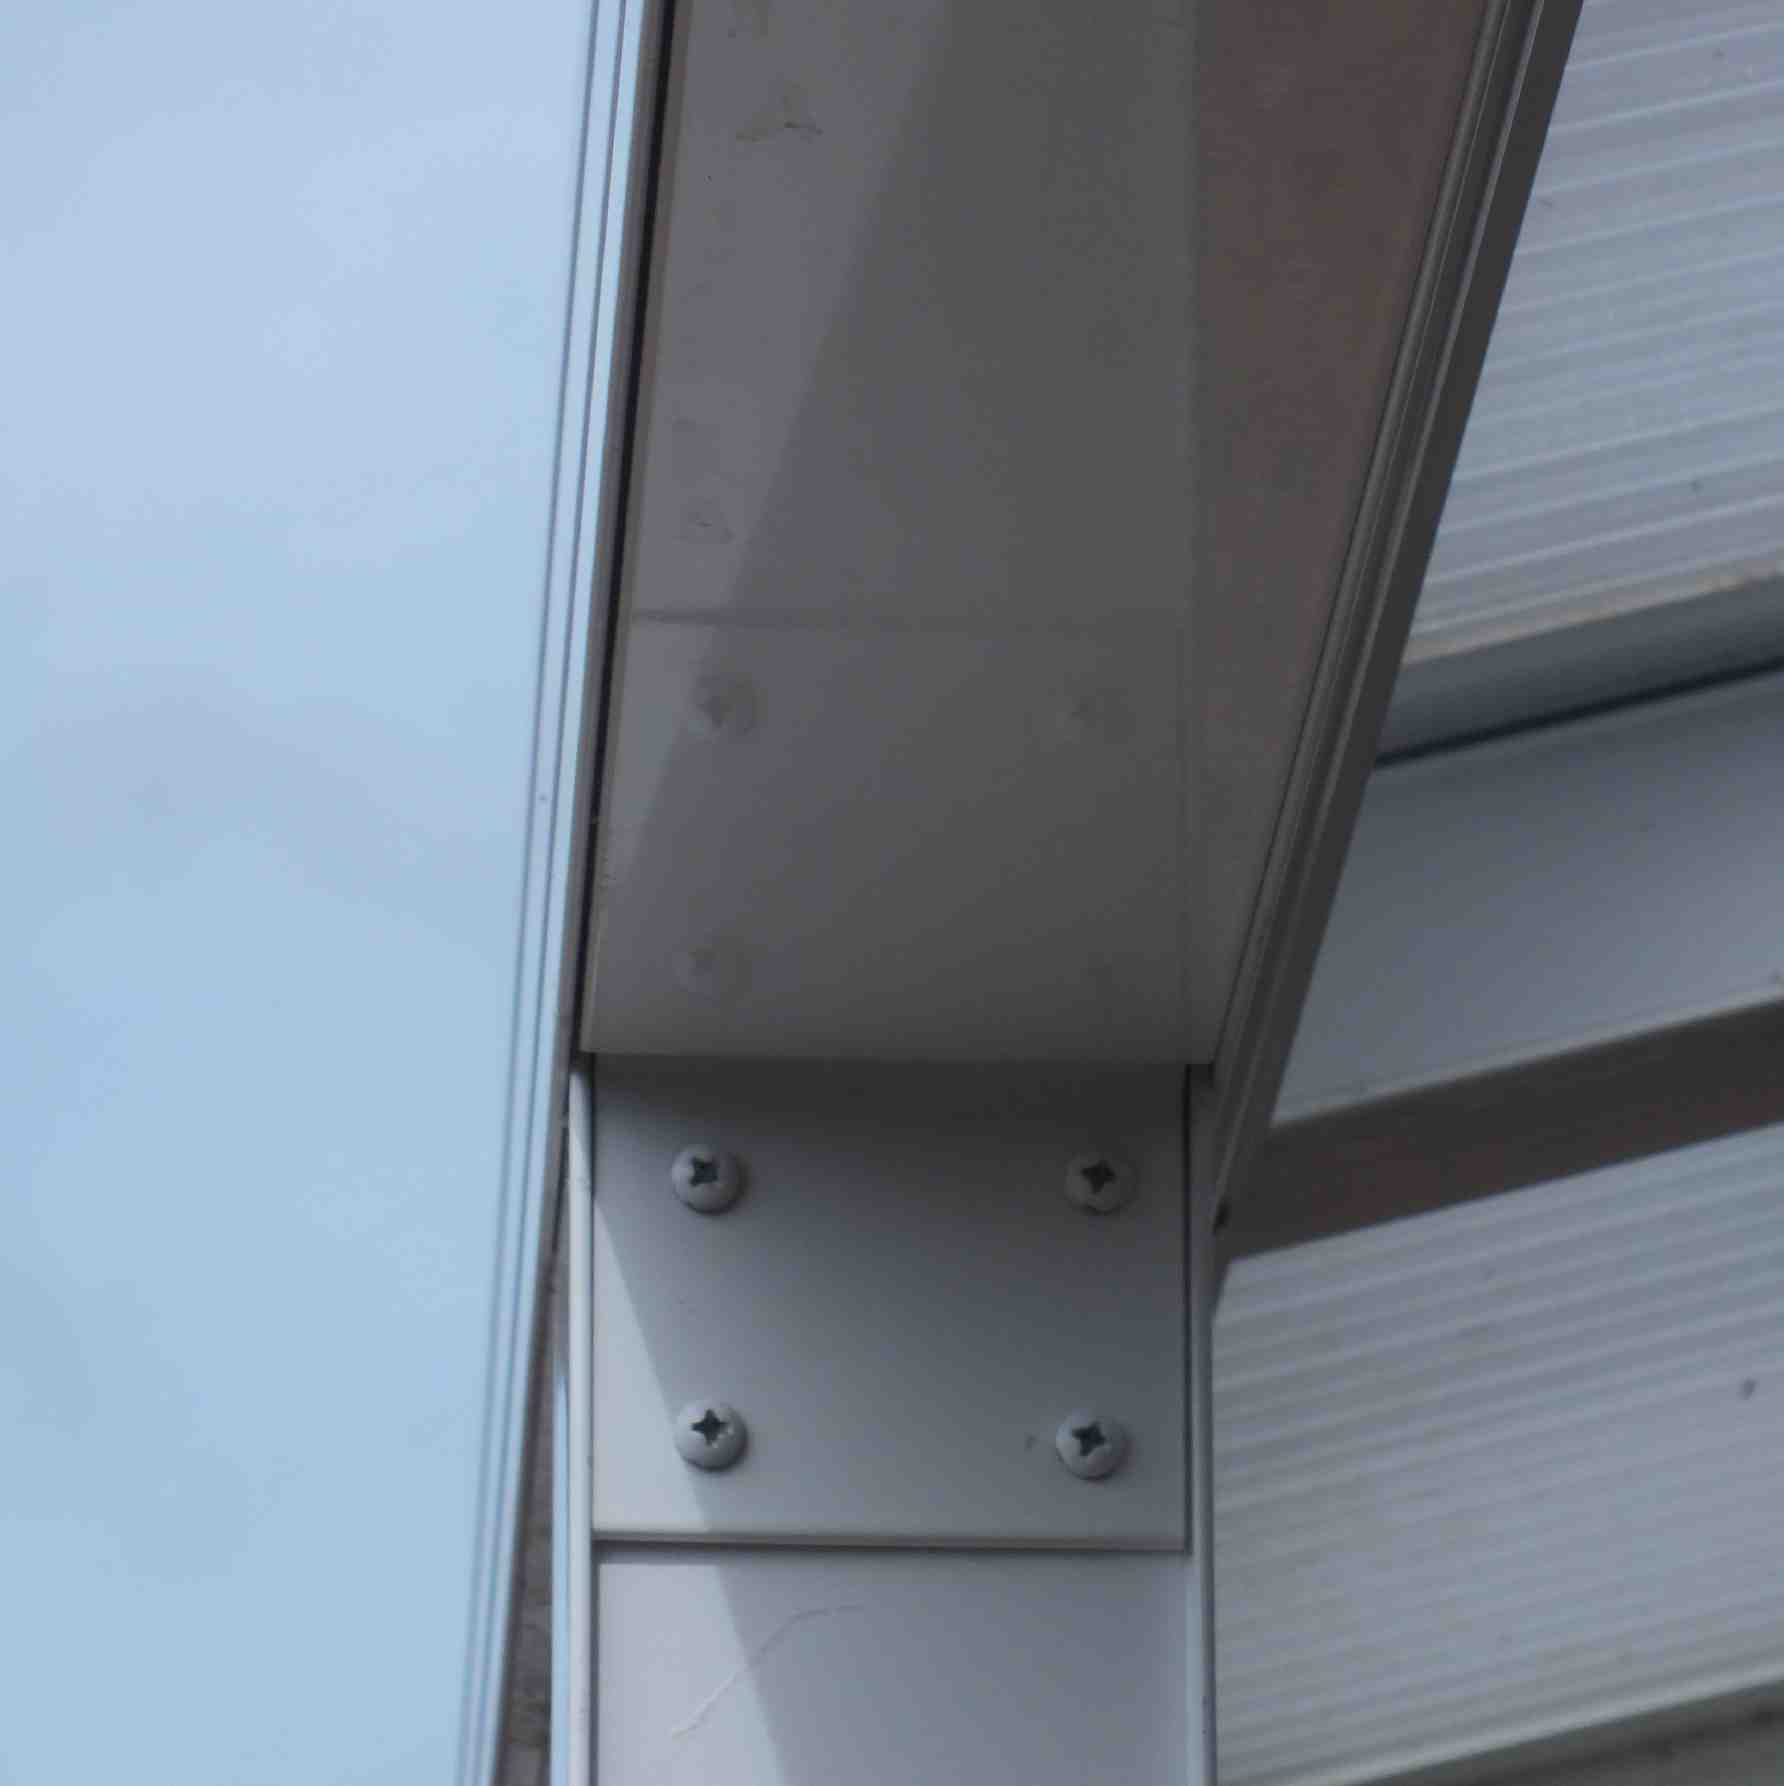 Affordable Omega Verandah with 6mm Glass Clear Plate Polycarbonate Glazing - 3.5m (W) x 1.5m (P), (3) Supporting Posts